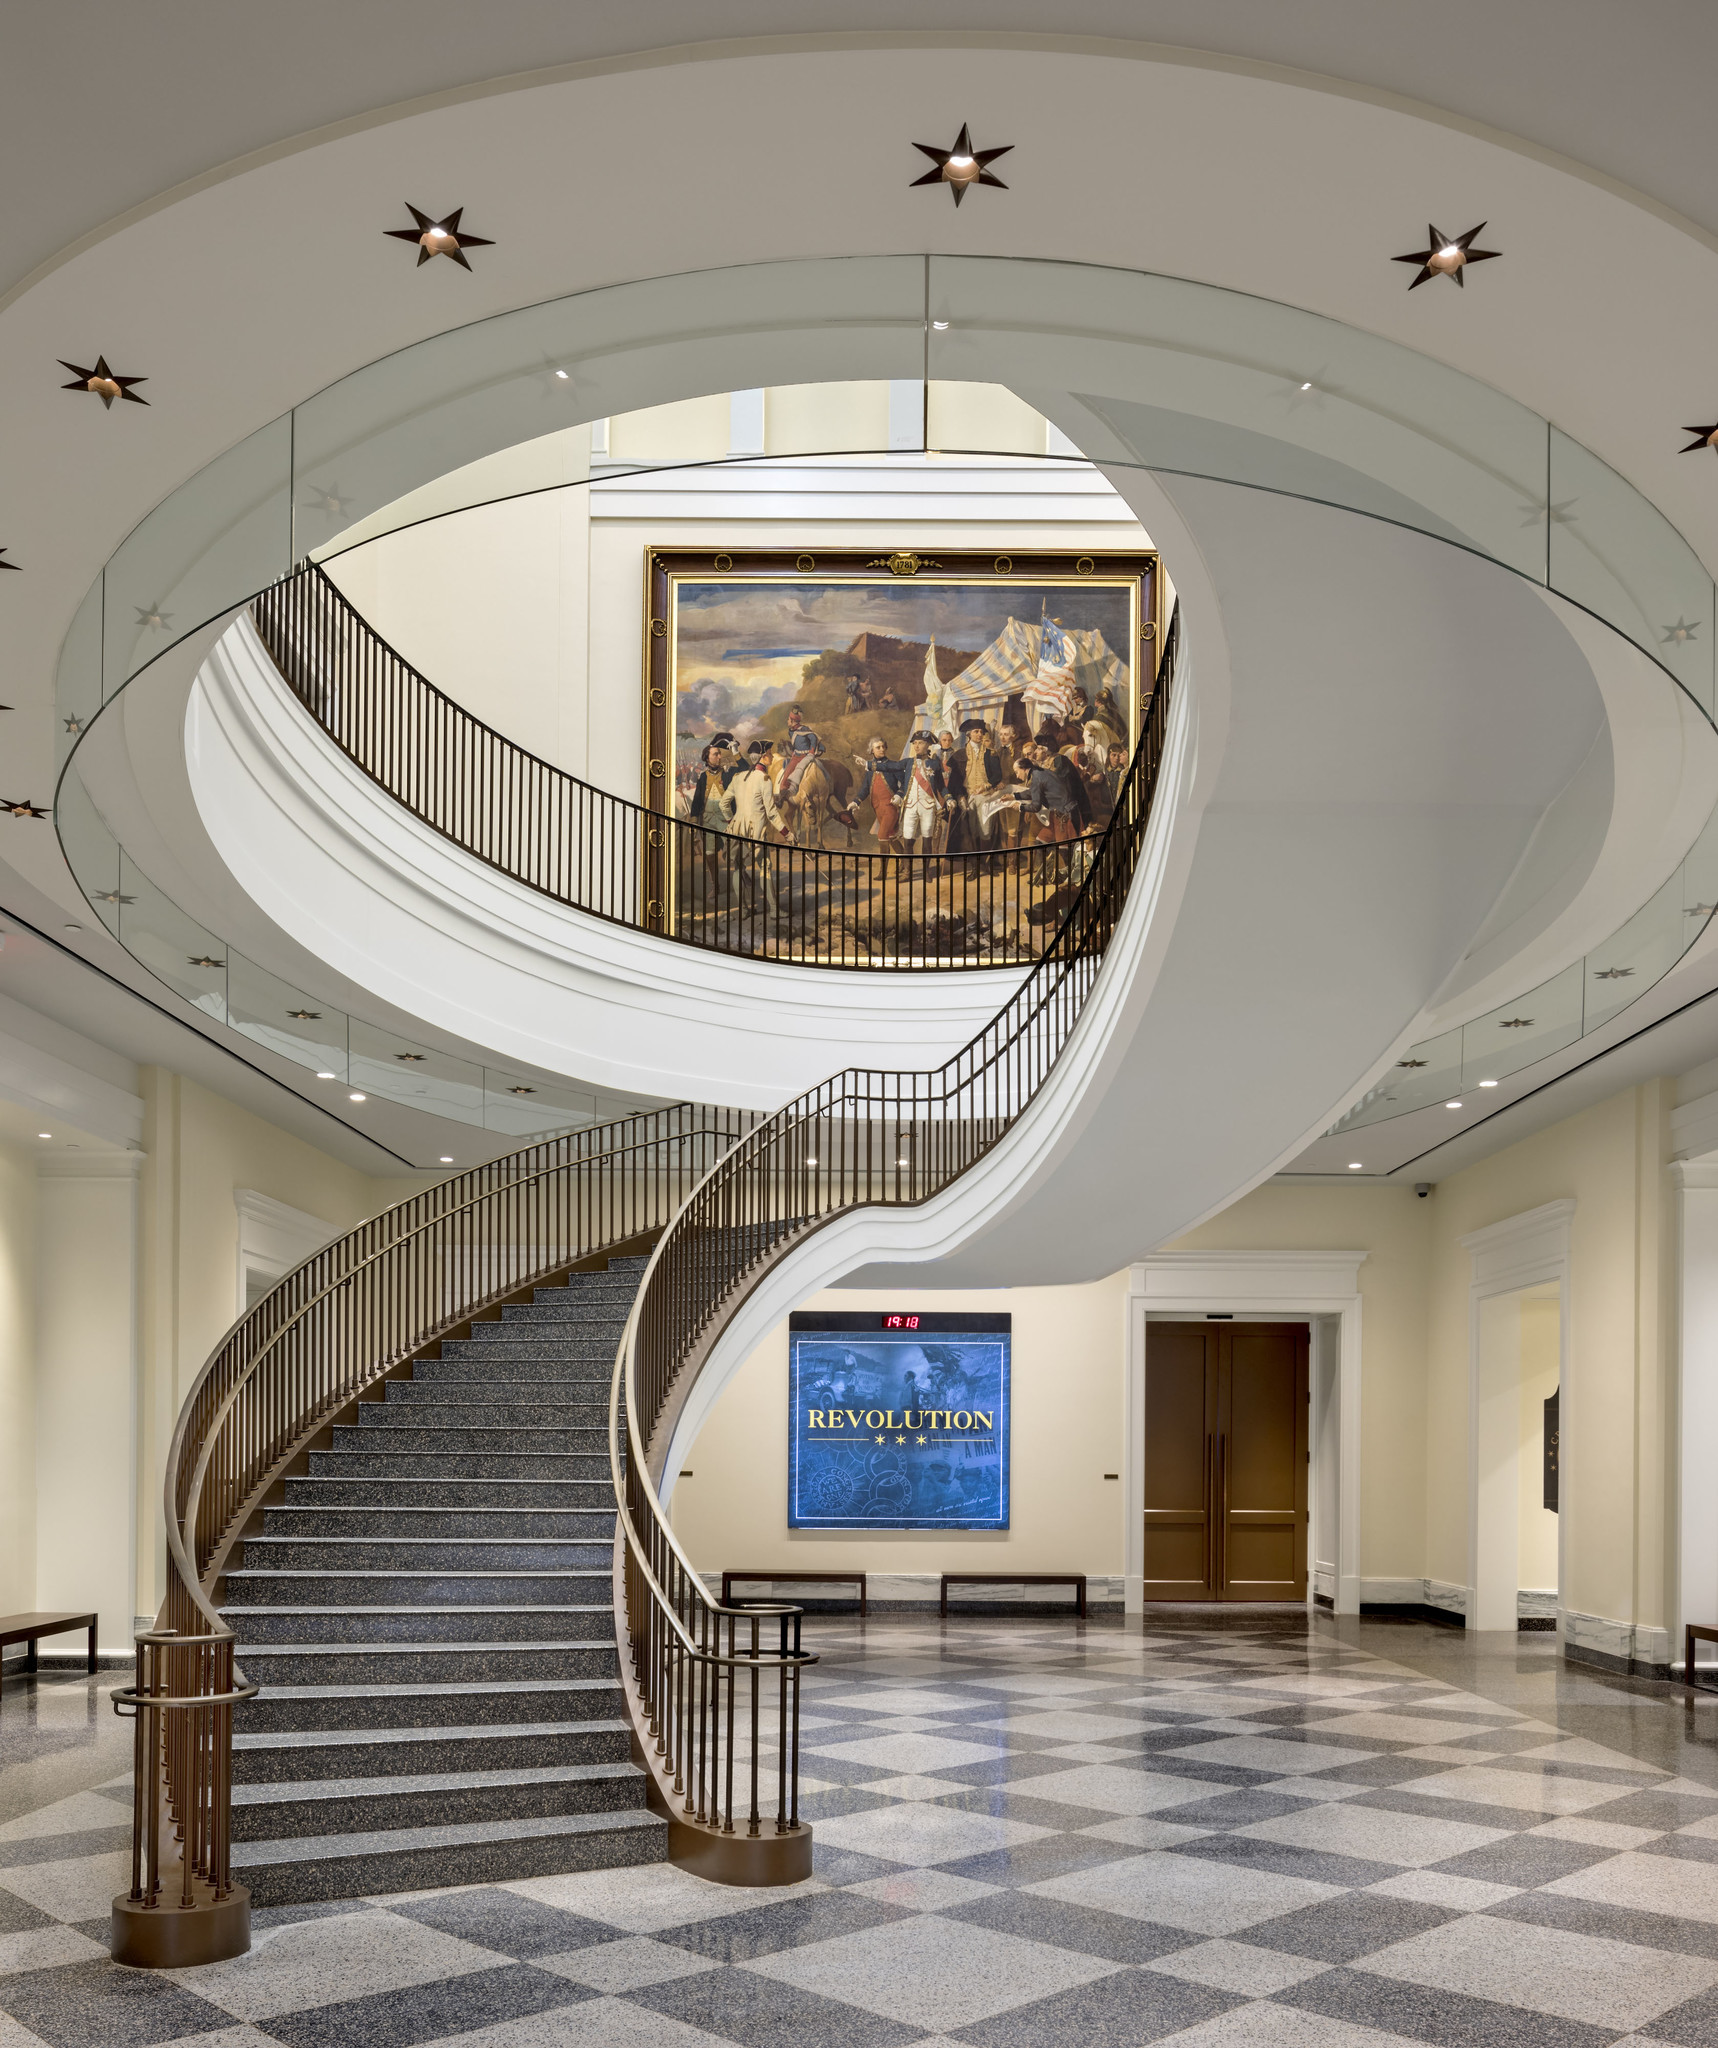 The museum's atrium is dominated by what the architects call a